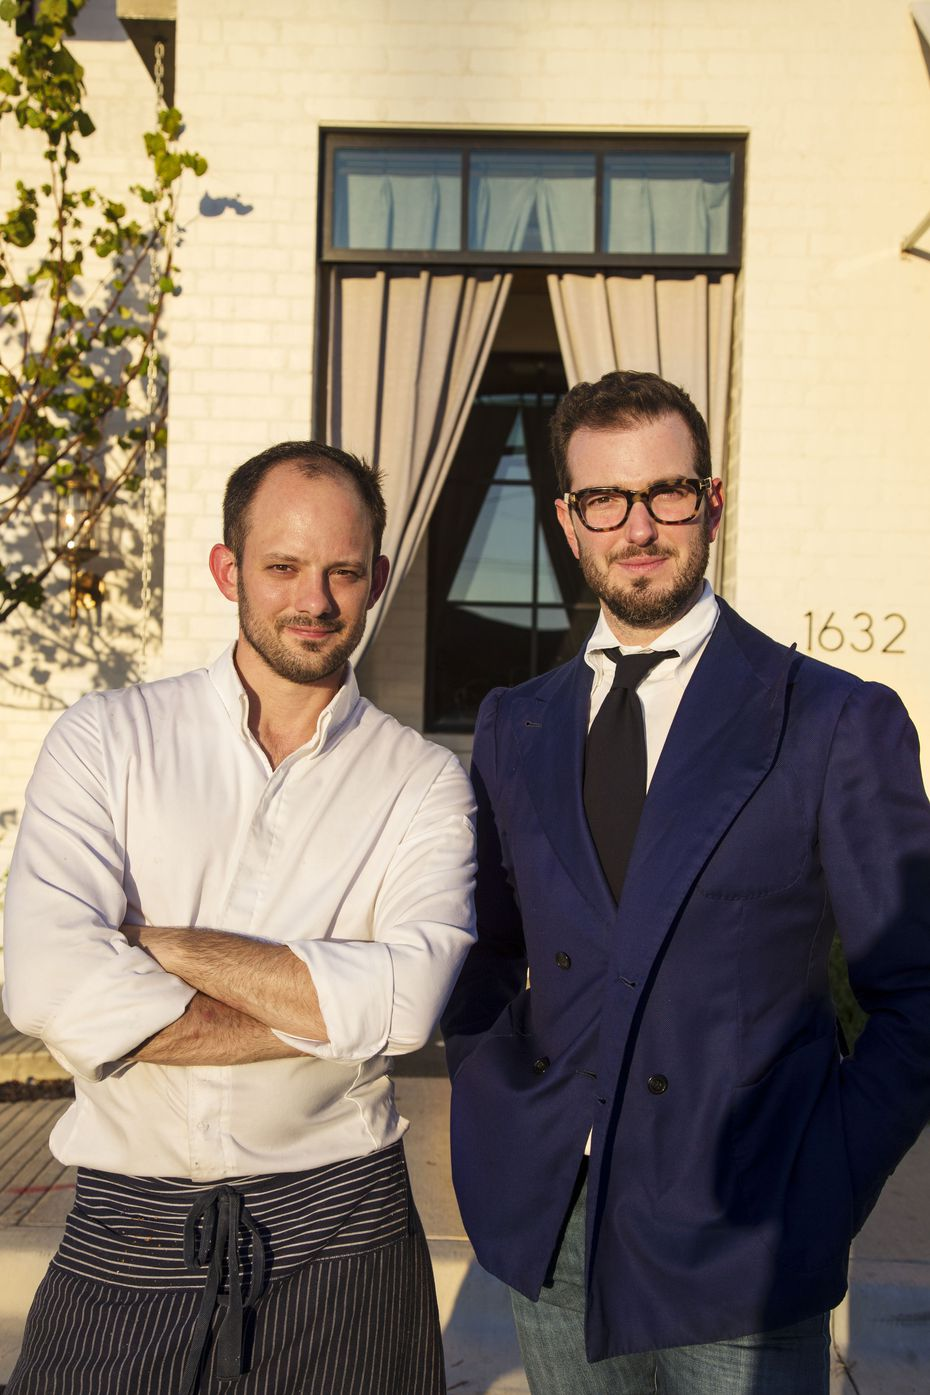 Restaurateur Chas Martin, right, is opening a new restaurant on Greenville Avenue, where The Grape was. Martin operates The Charles alongside chef J. Chastain.